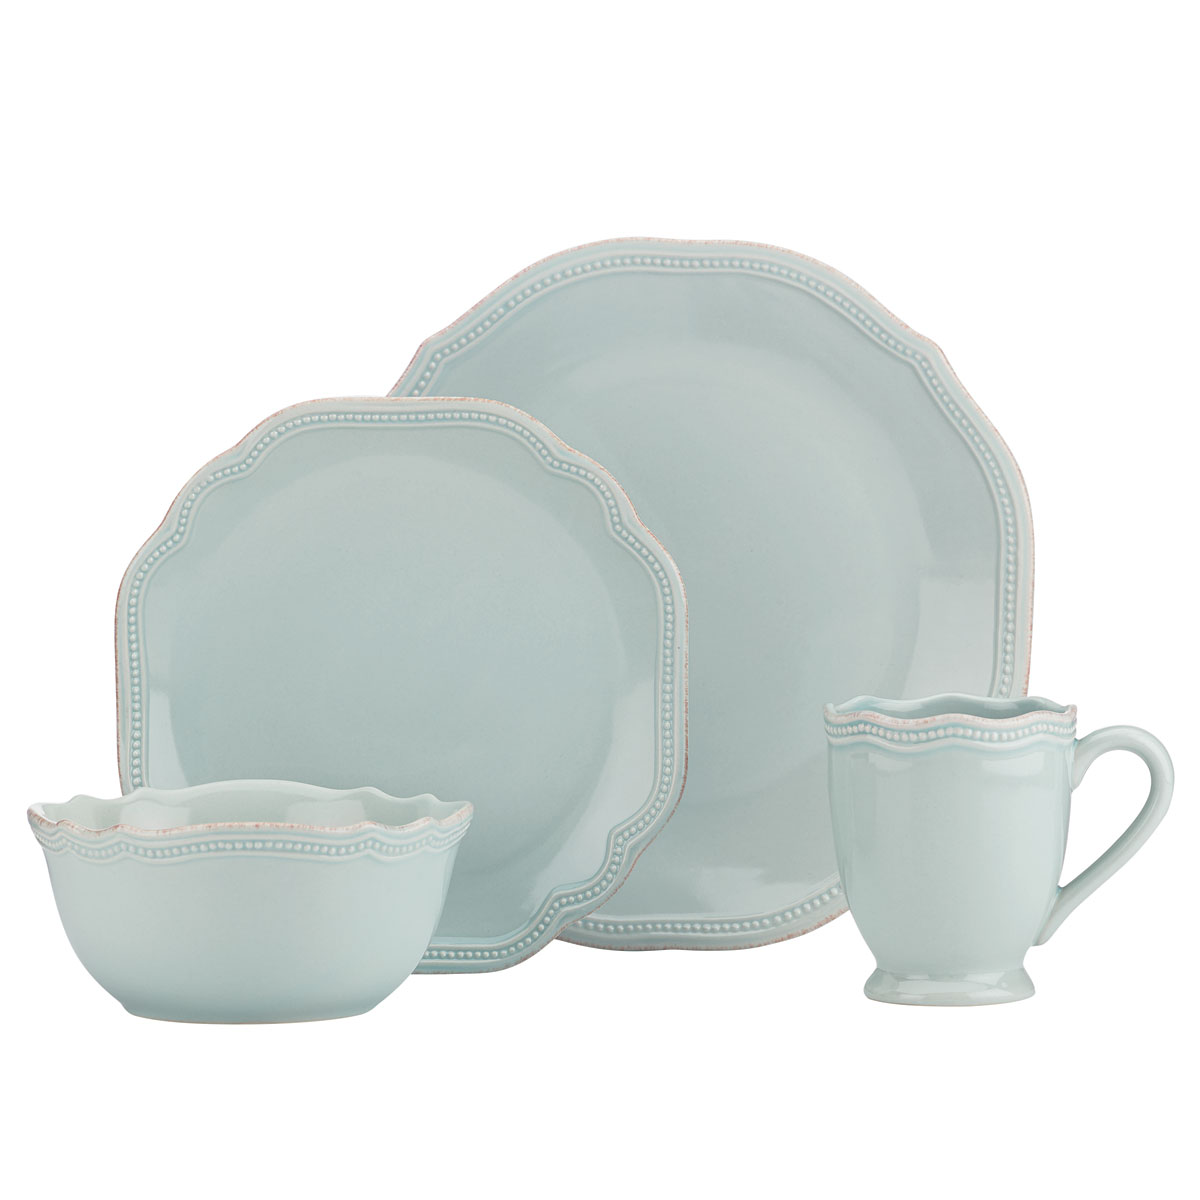 Lenox French Perle Bead Ice Blue Round, 4 Piece Place Setting